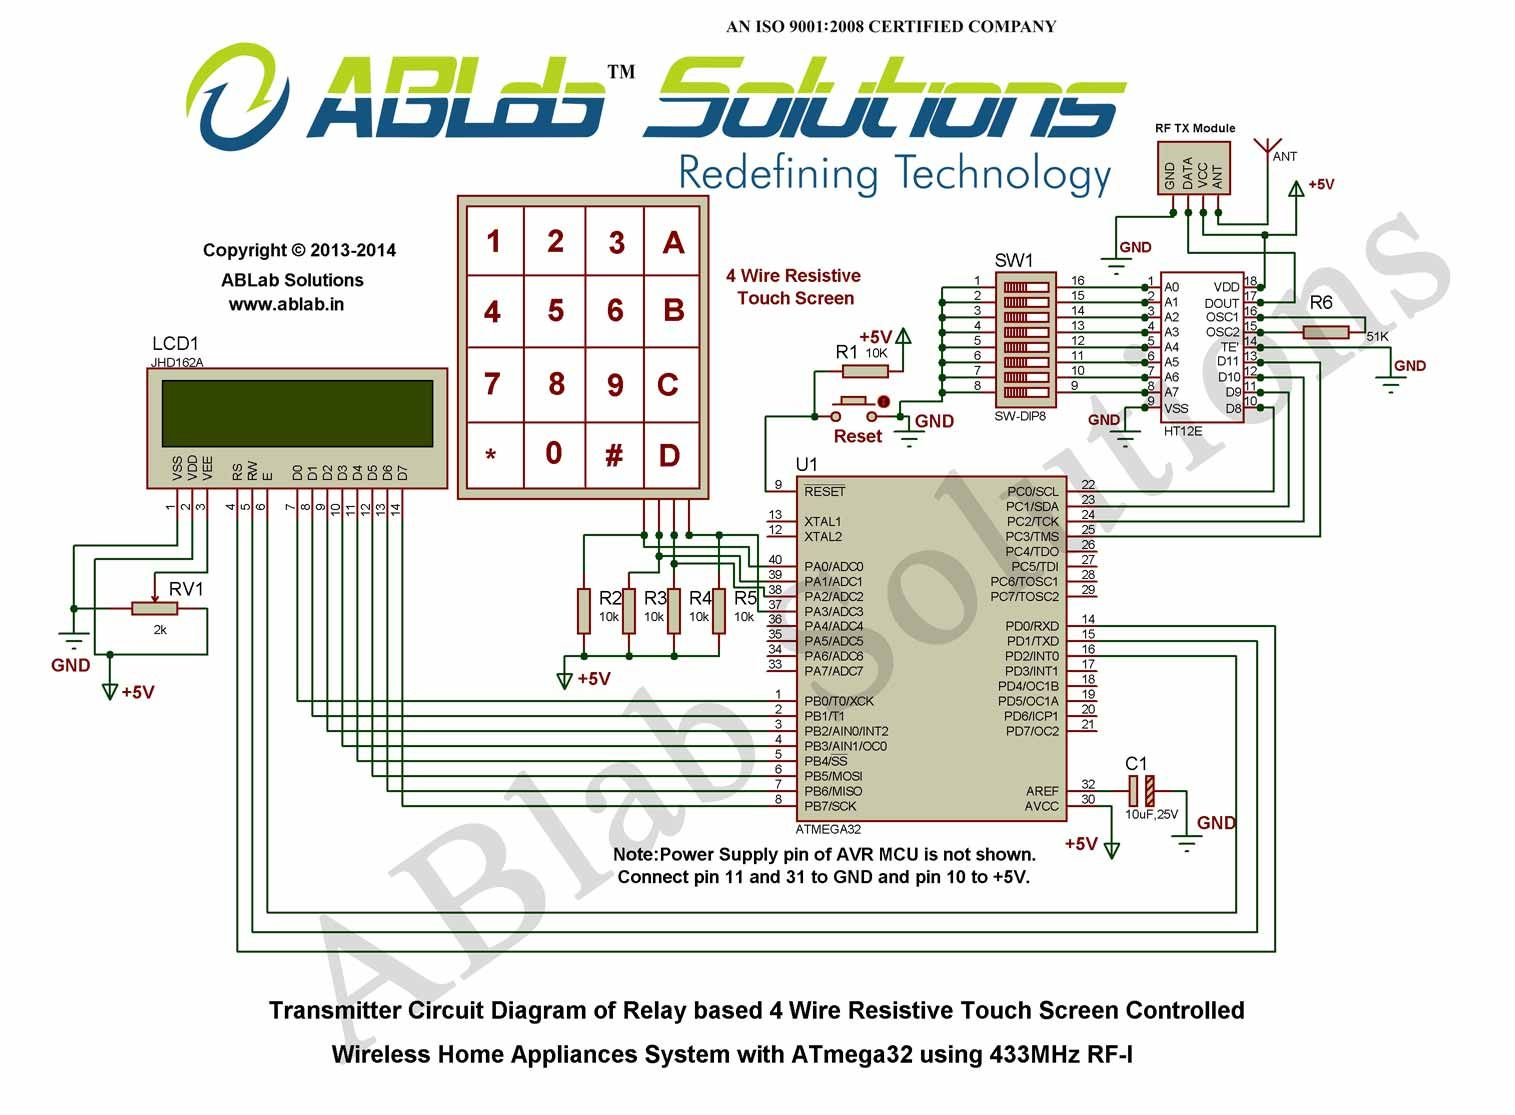 medium resolution of relay based 4 wire resistive touch screen controlled wireless home appliances system with avr atmega32 microcontroller using 433mhz rf i transmitter circuit